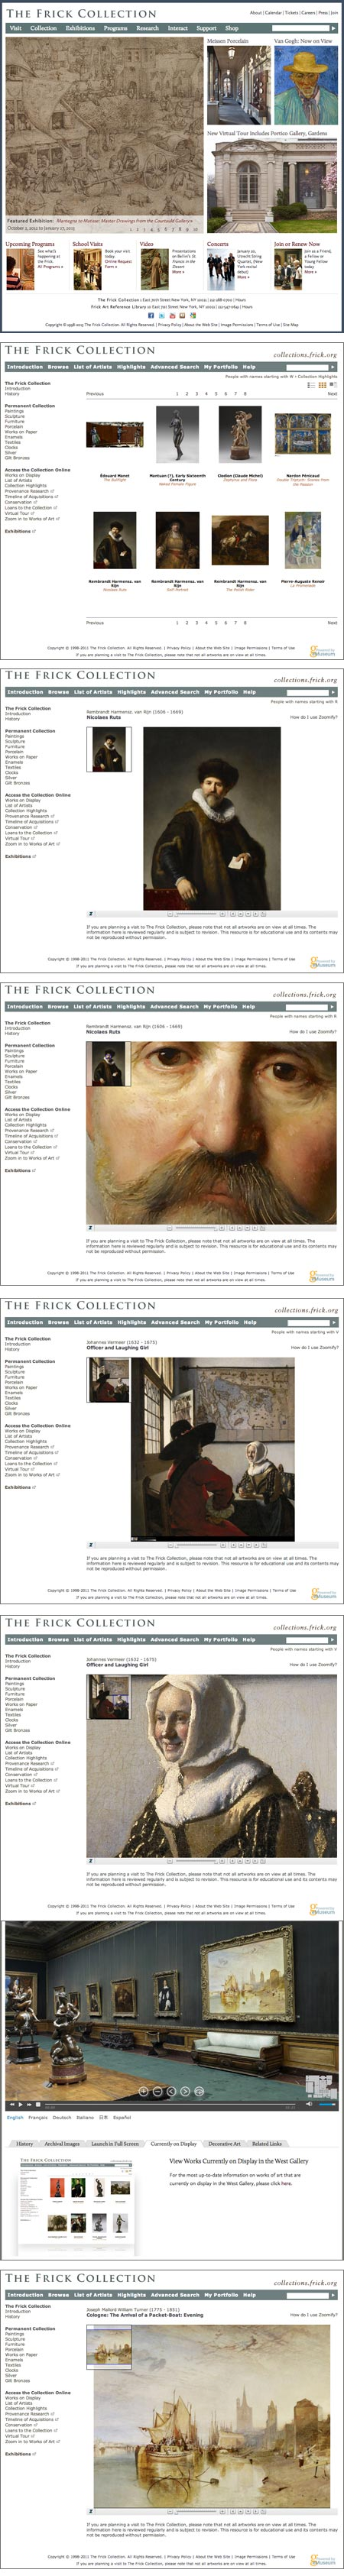 New Frick Collection Website